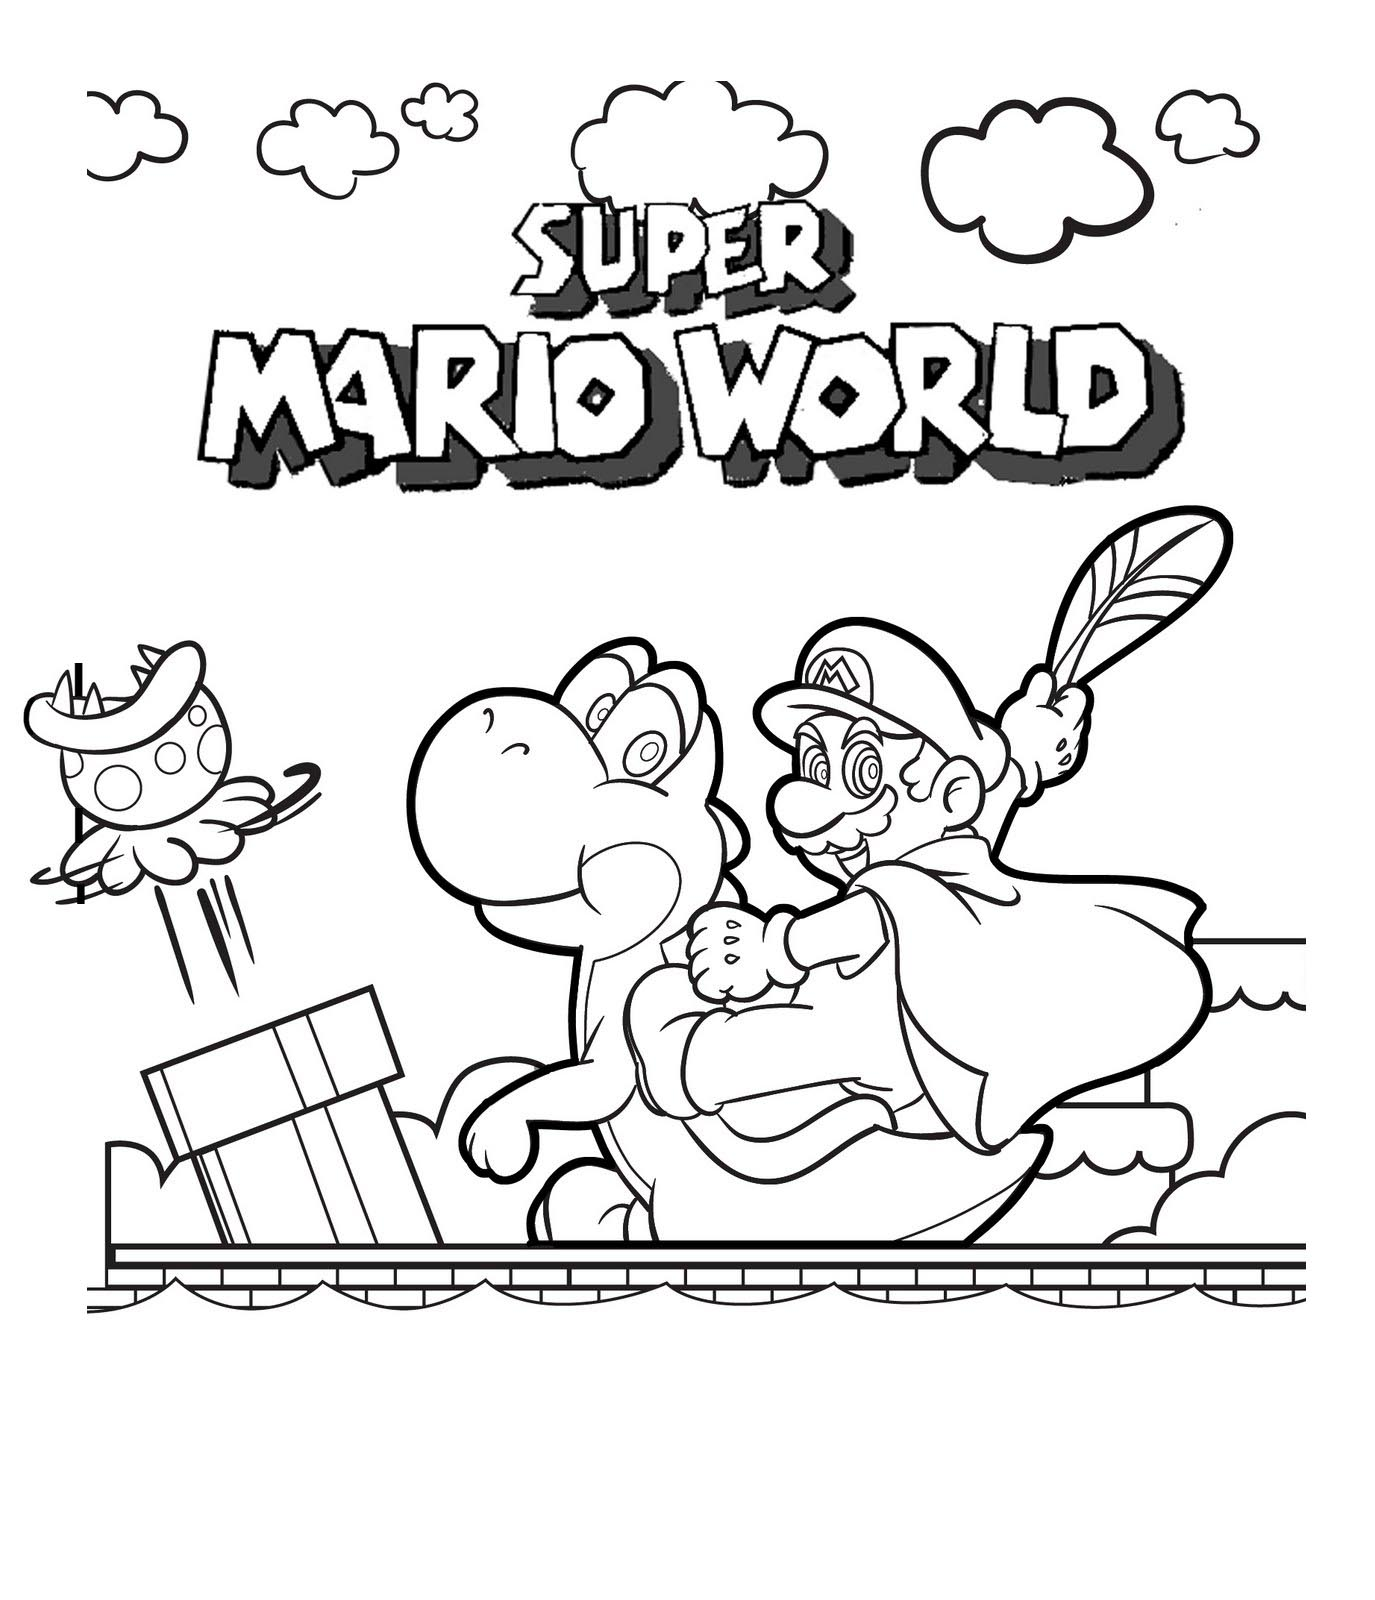 super mario coloring pages - Coloring Printouts